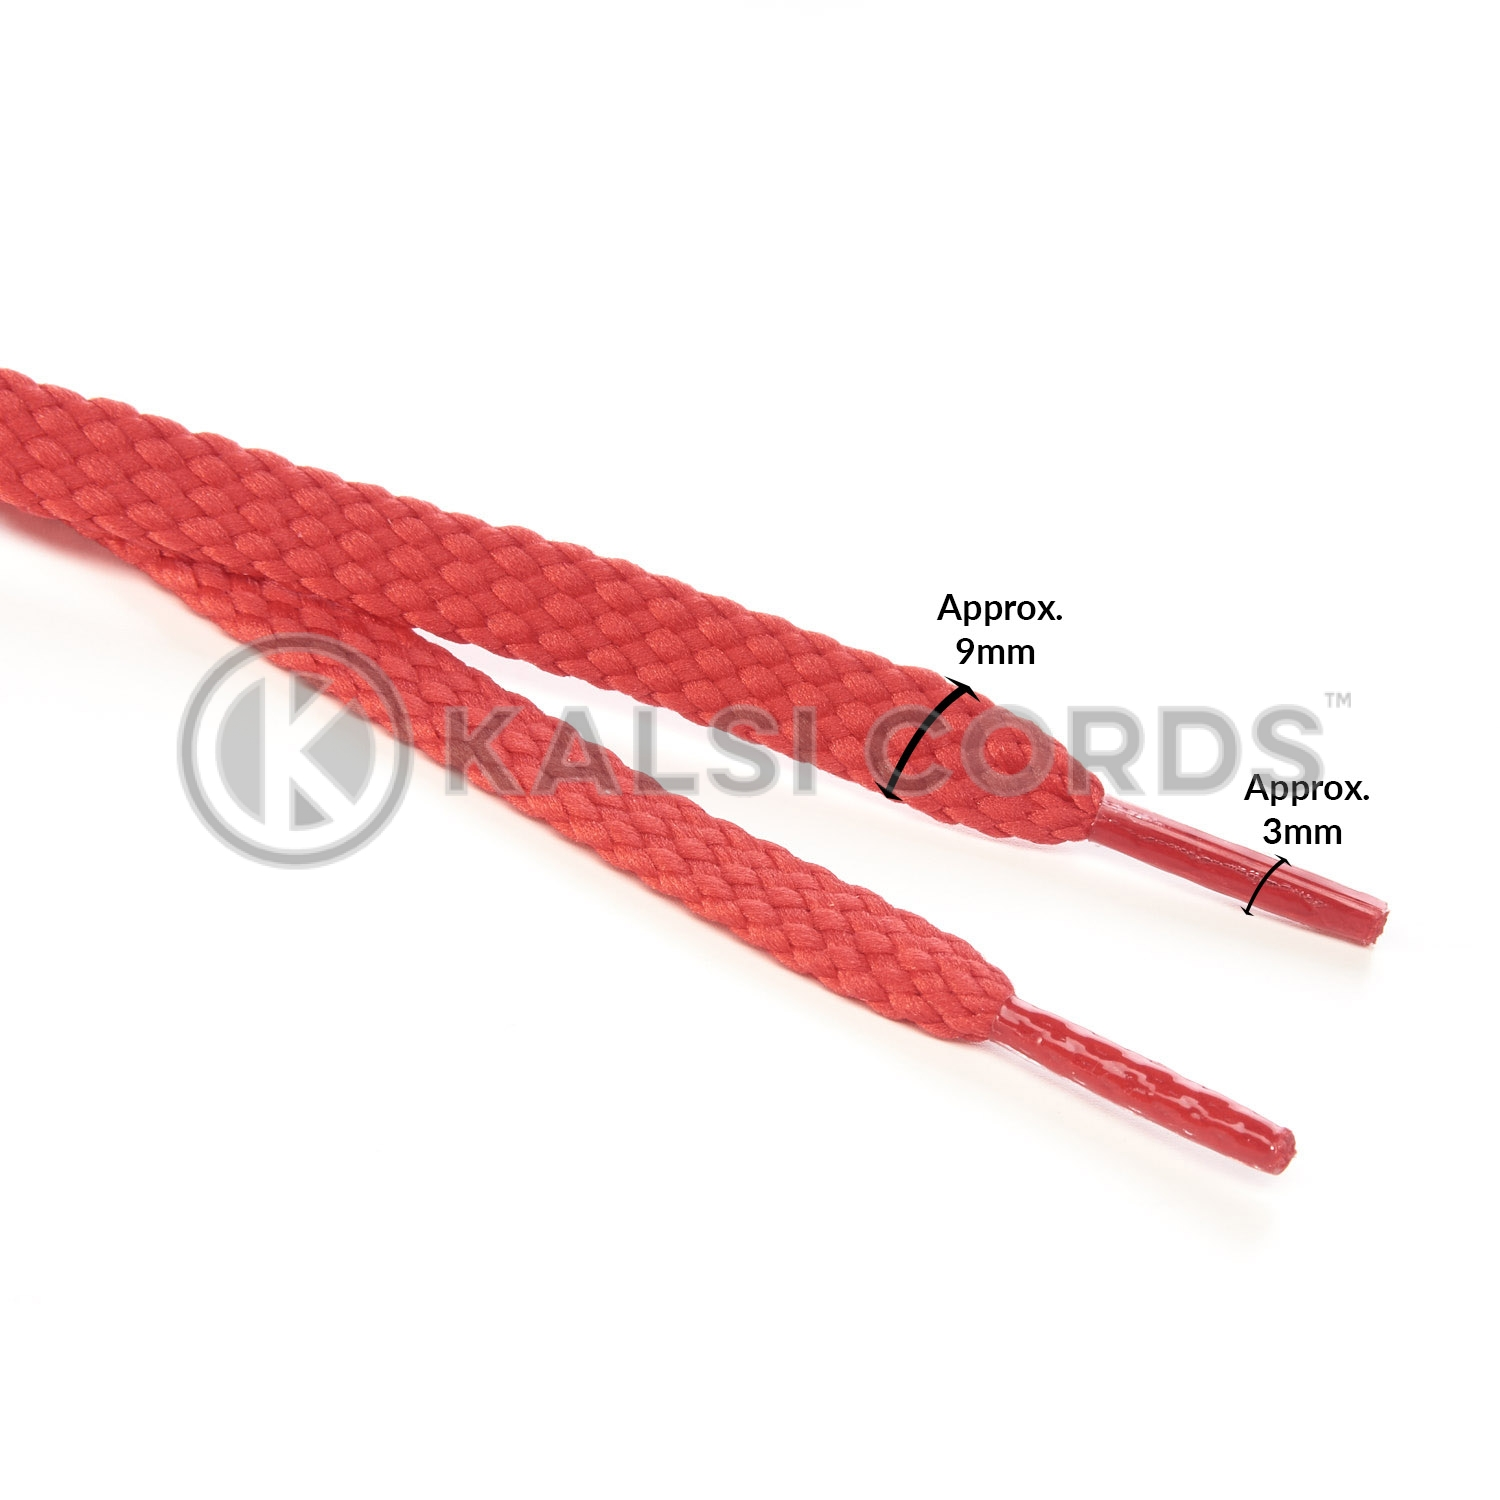 R1472 Red Sports Flat Shoe Laces Kalsi Cords